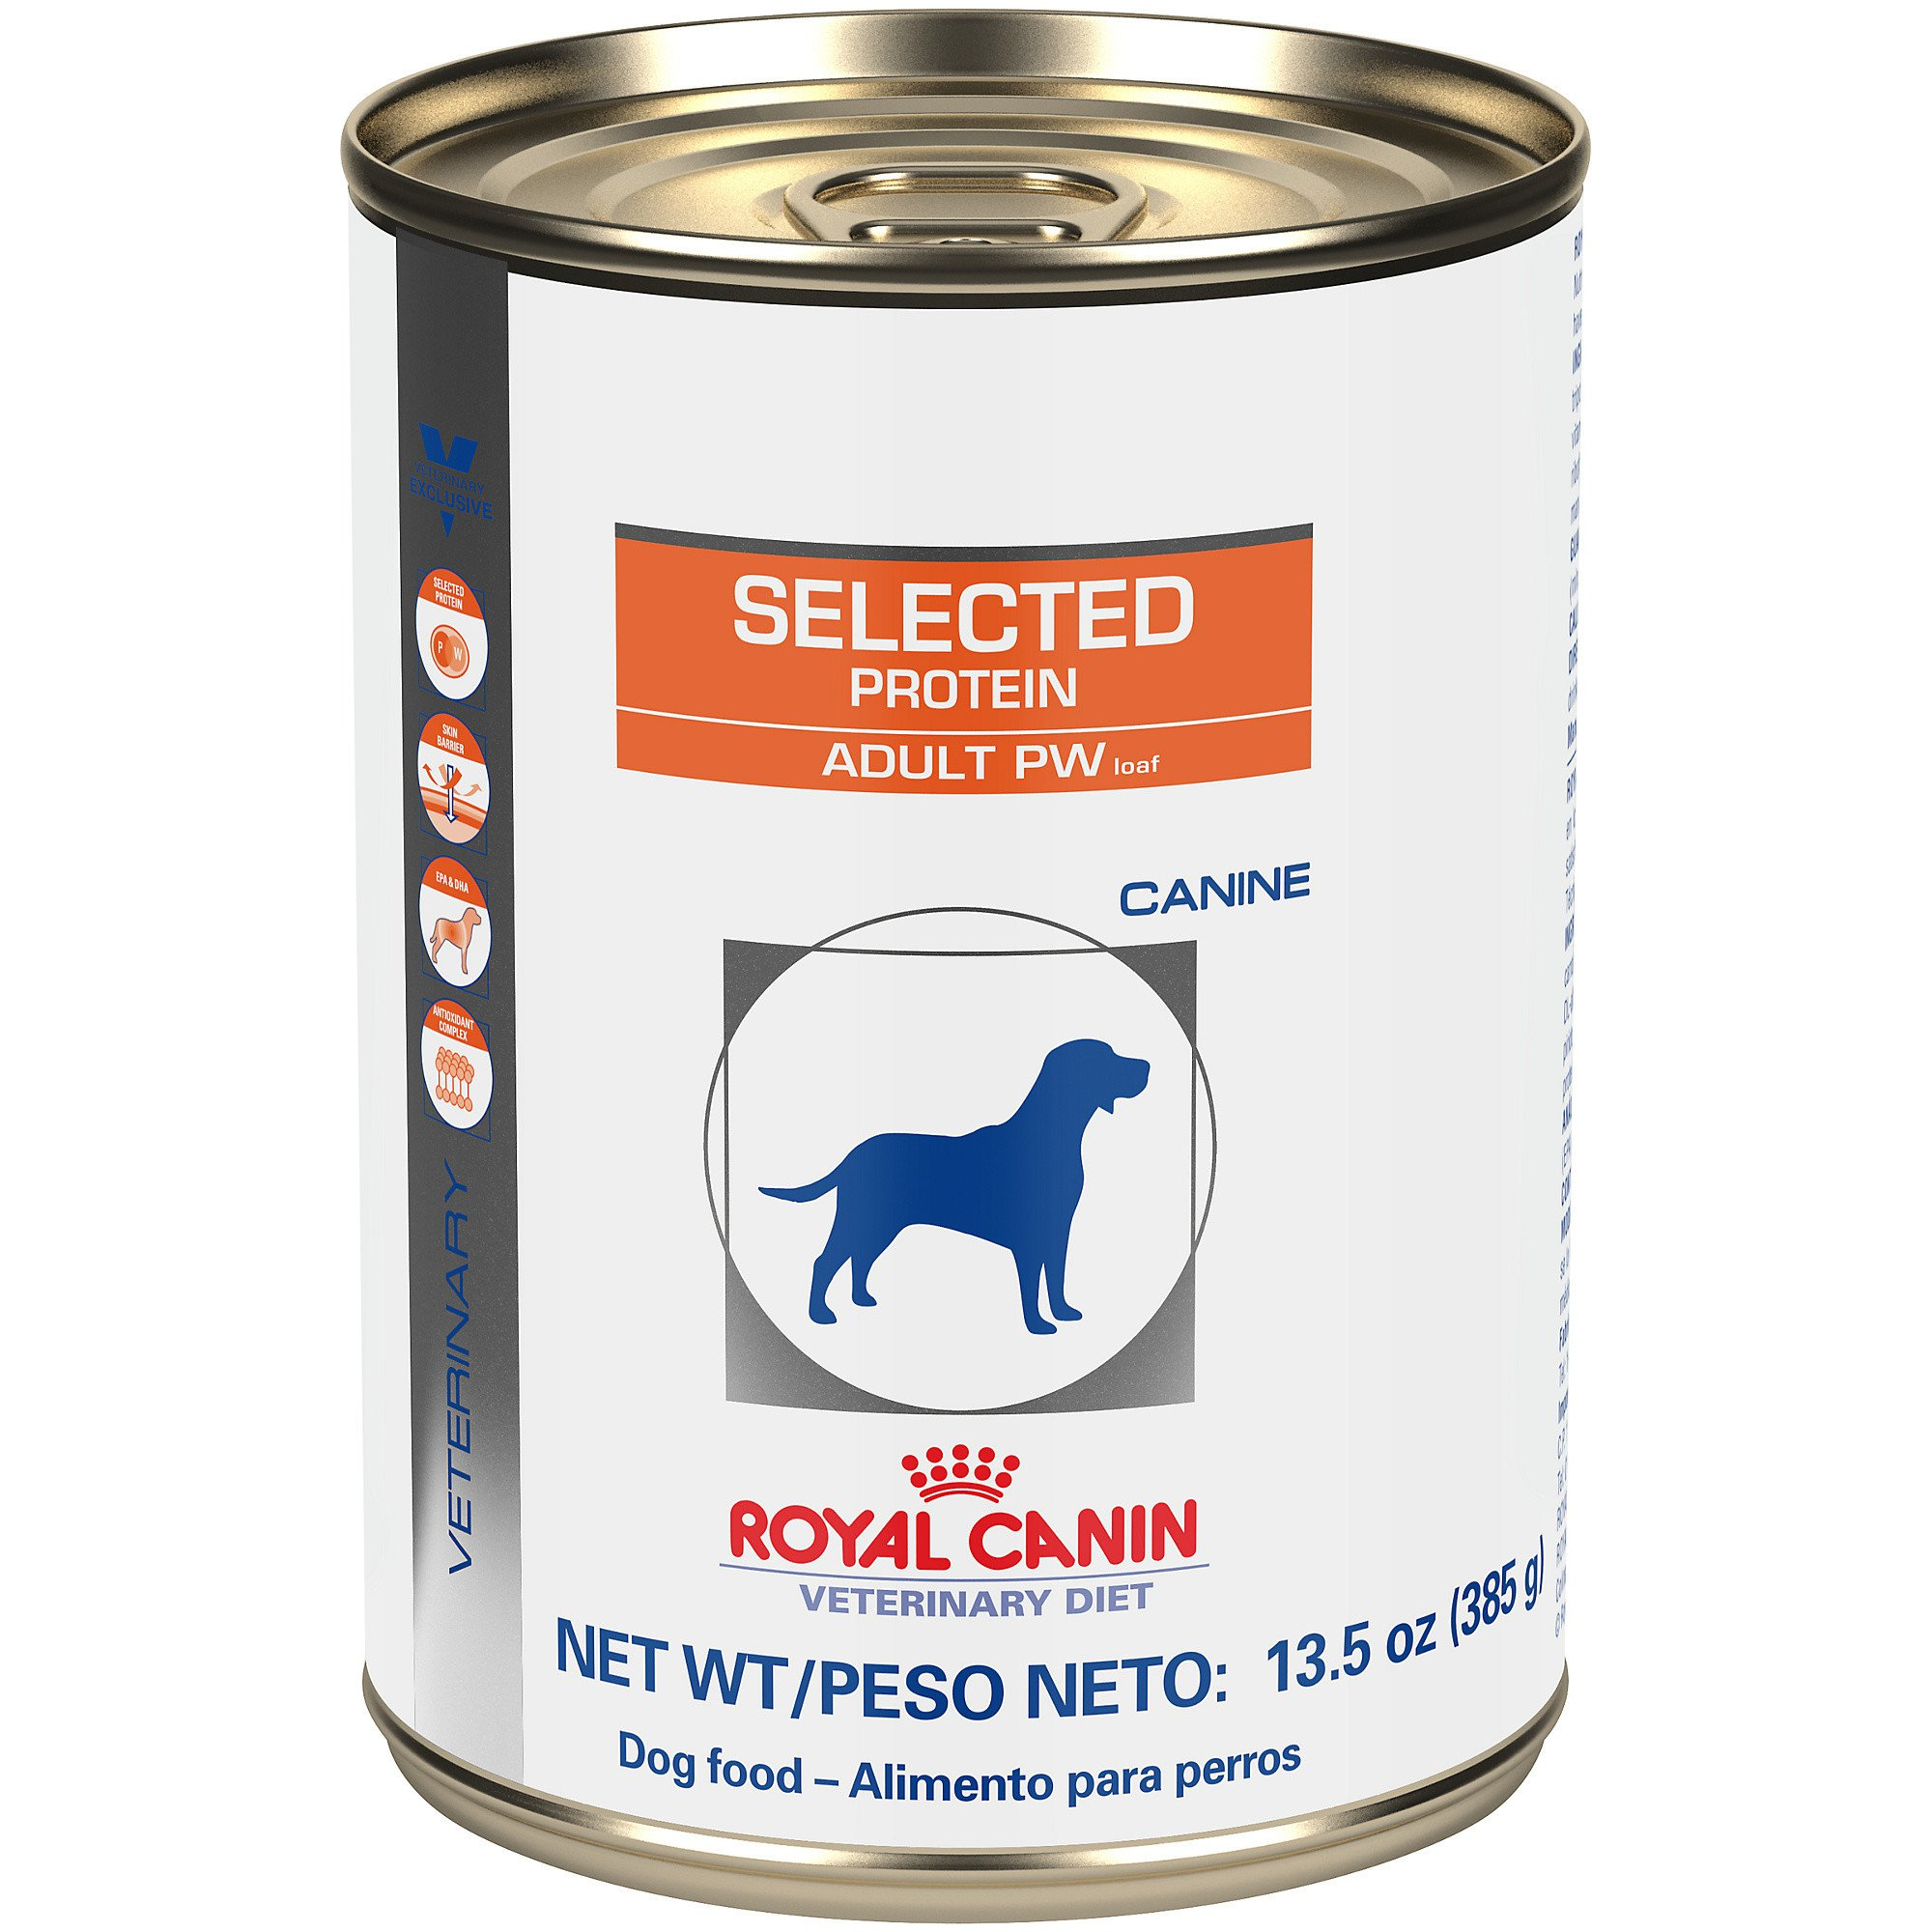 royal canin veterinary diet canine selected protein adult pw in gel wet dog food petco. Black Bedroom Furniture Sets. Home Design Ideas